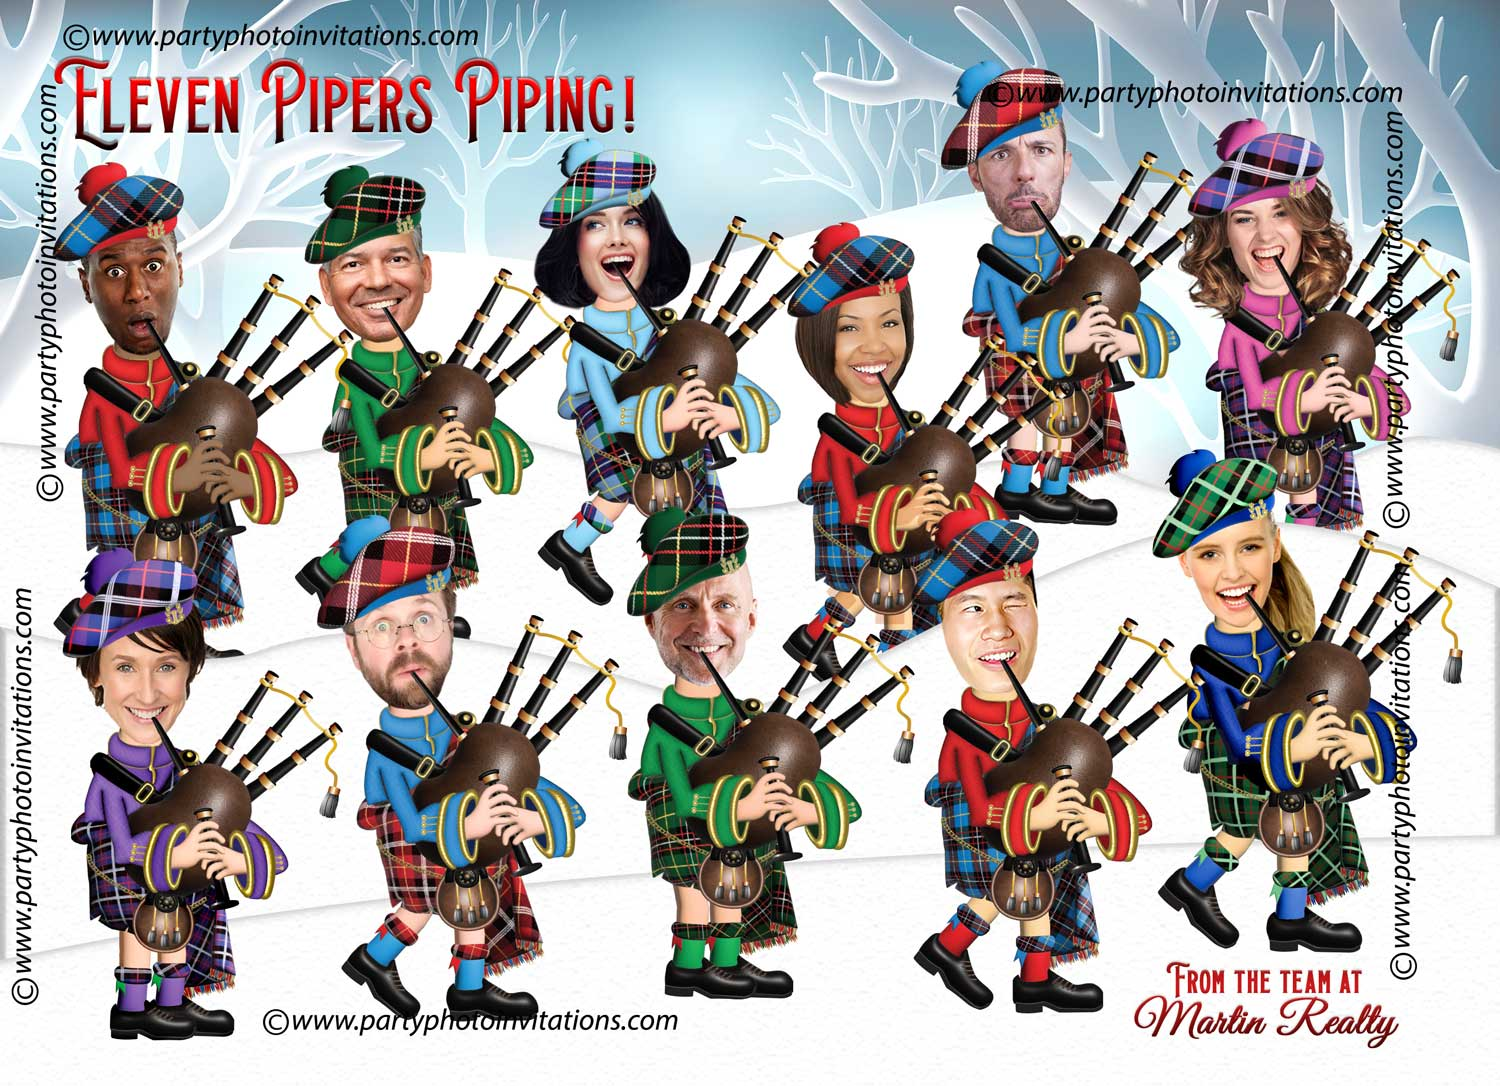 11 Pipers piping Funny Corporate Christmas Card